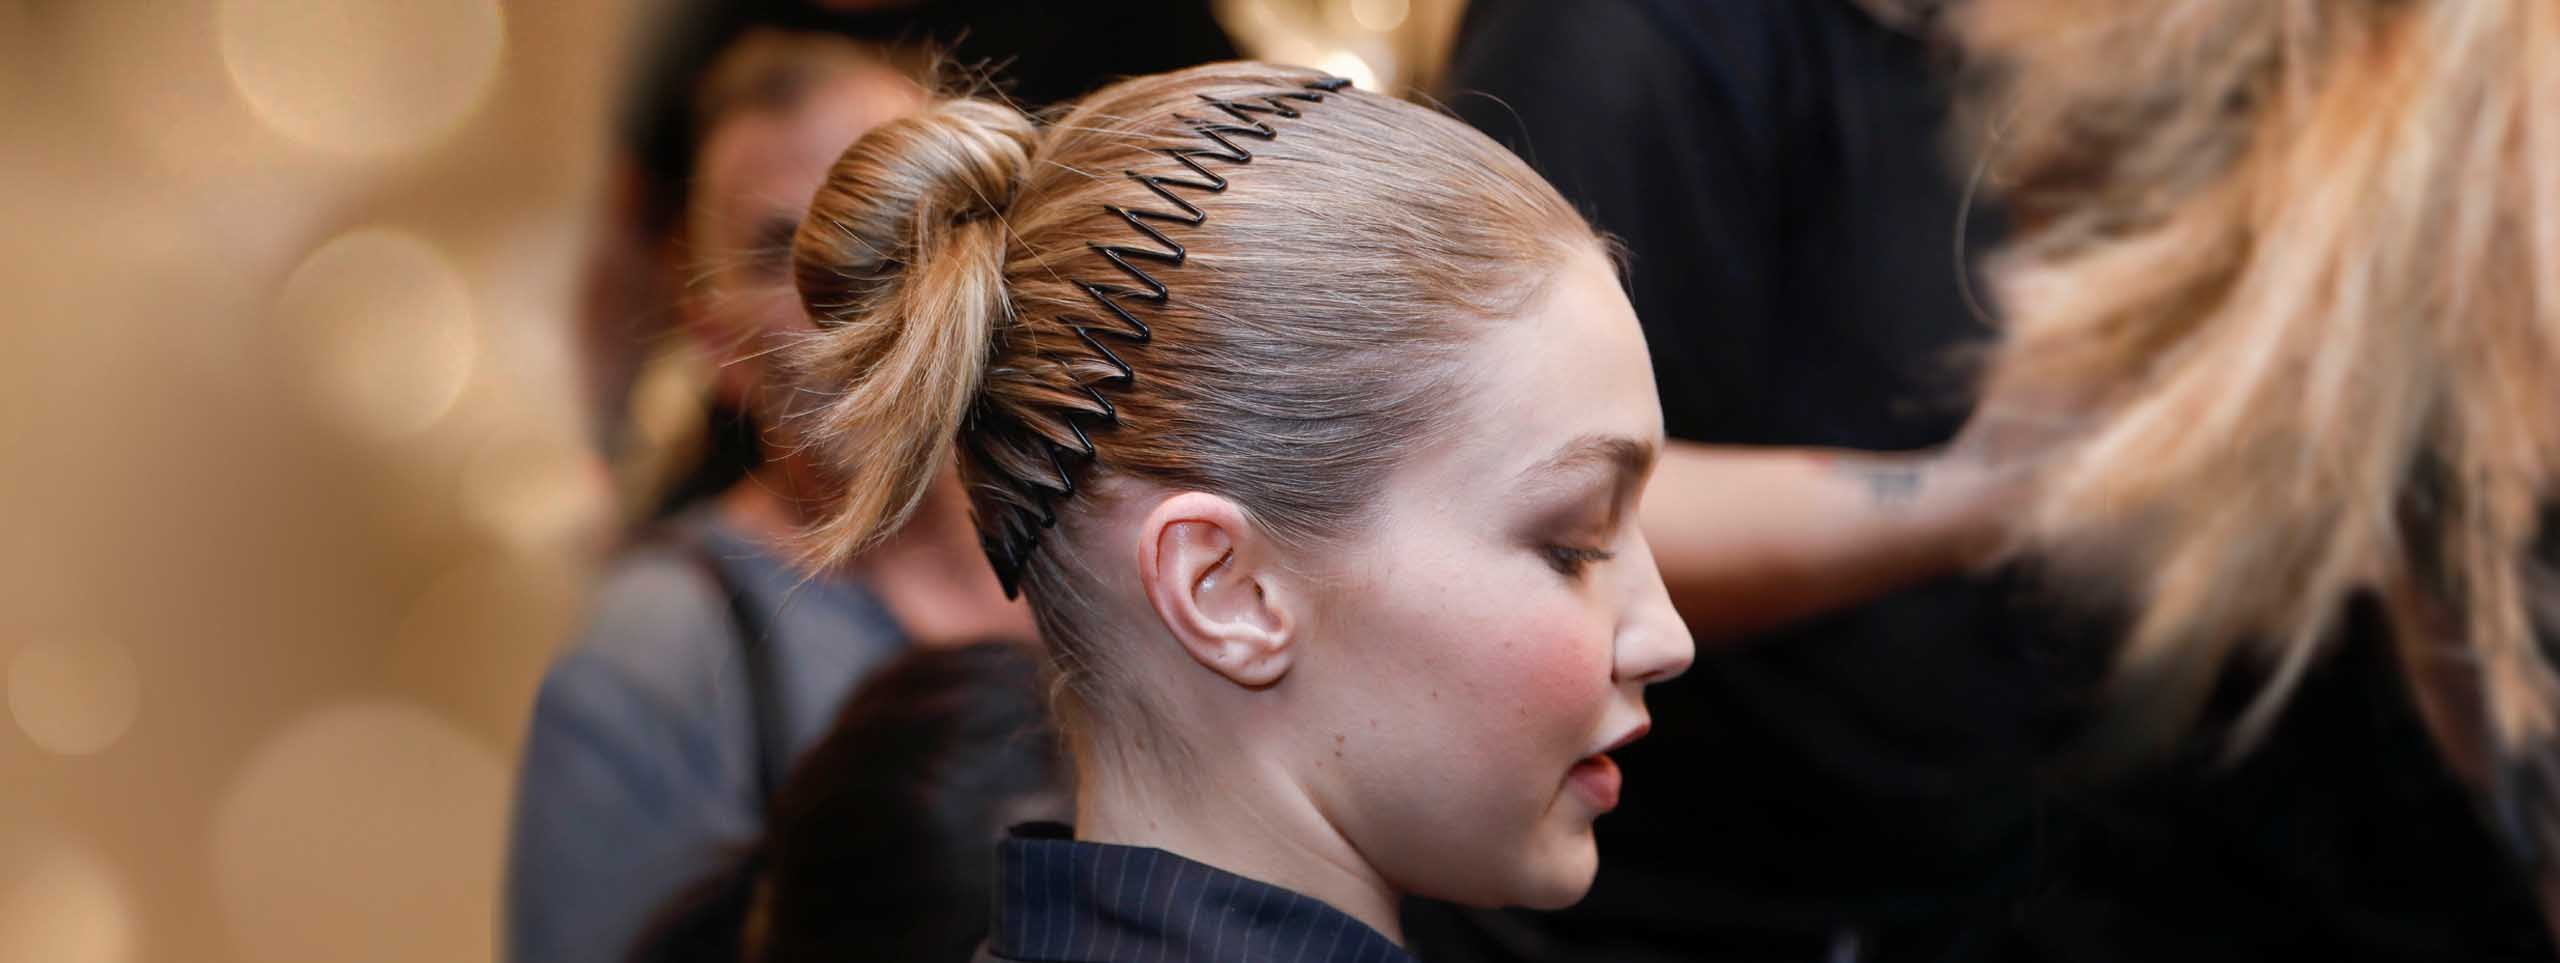 Sideview of woman with zig-zag headband